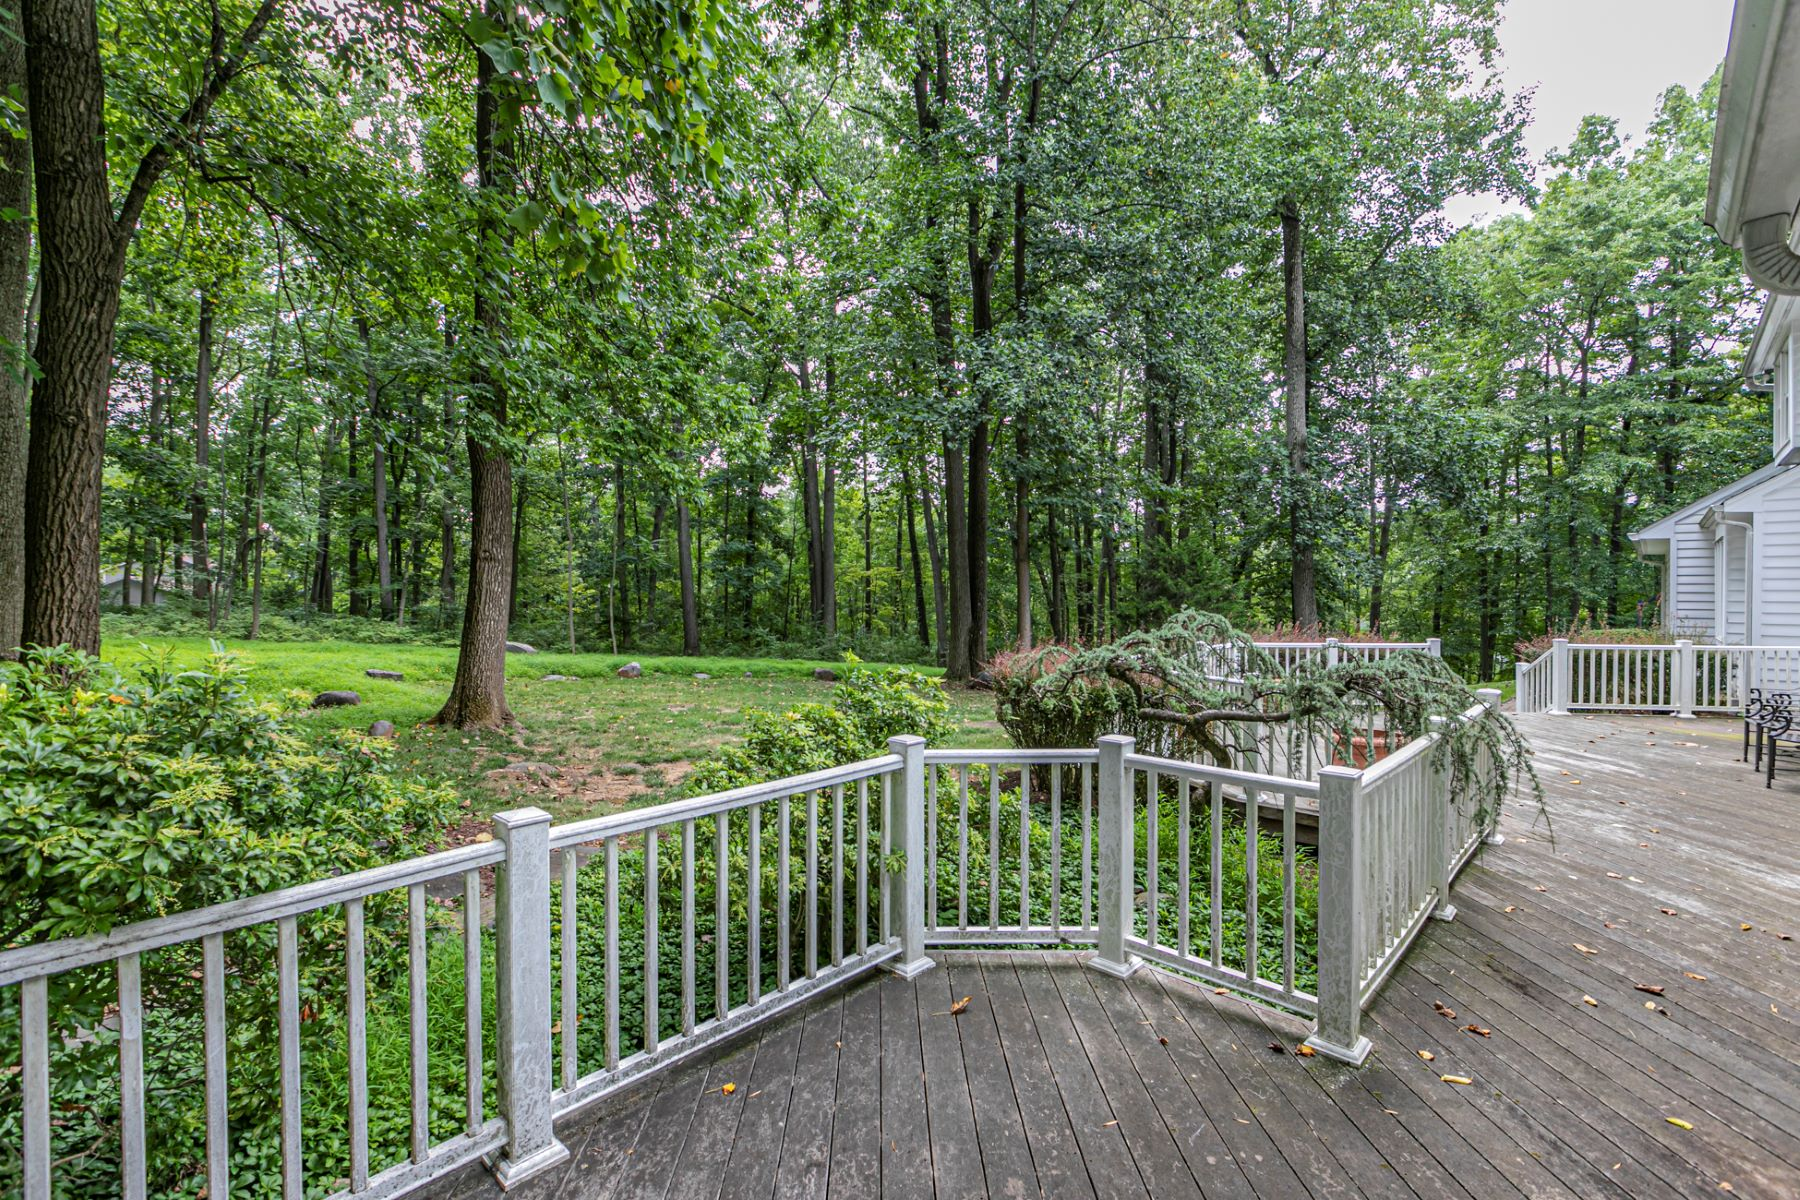 Additional photo for property listing at Graciousness and Privacy, Just Minutes from Town 265 Cherry Hill Road, Princeton, New Jersey 08540 United States